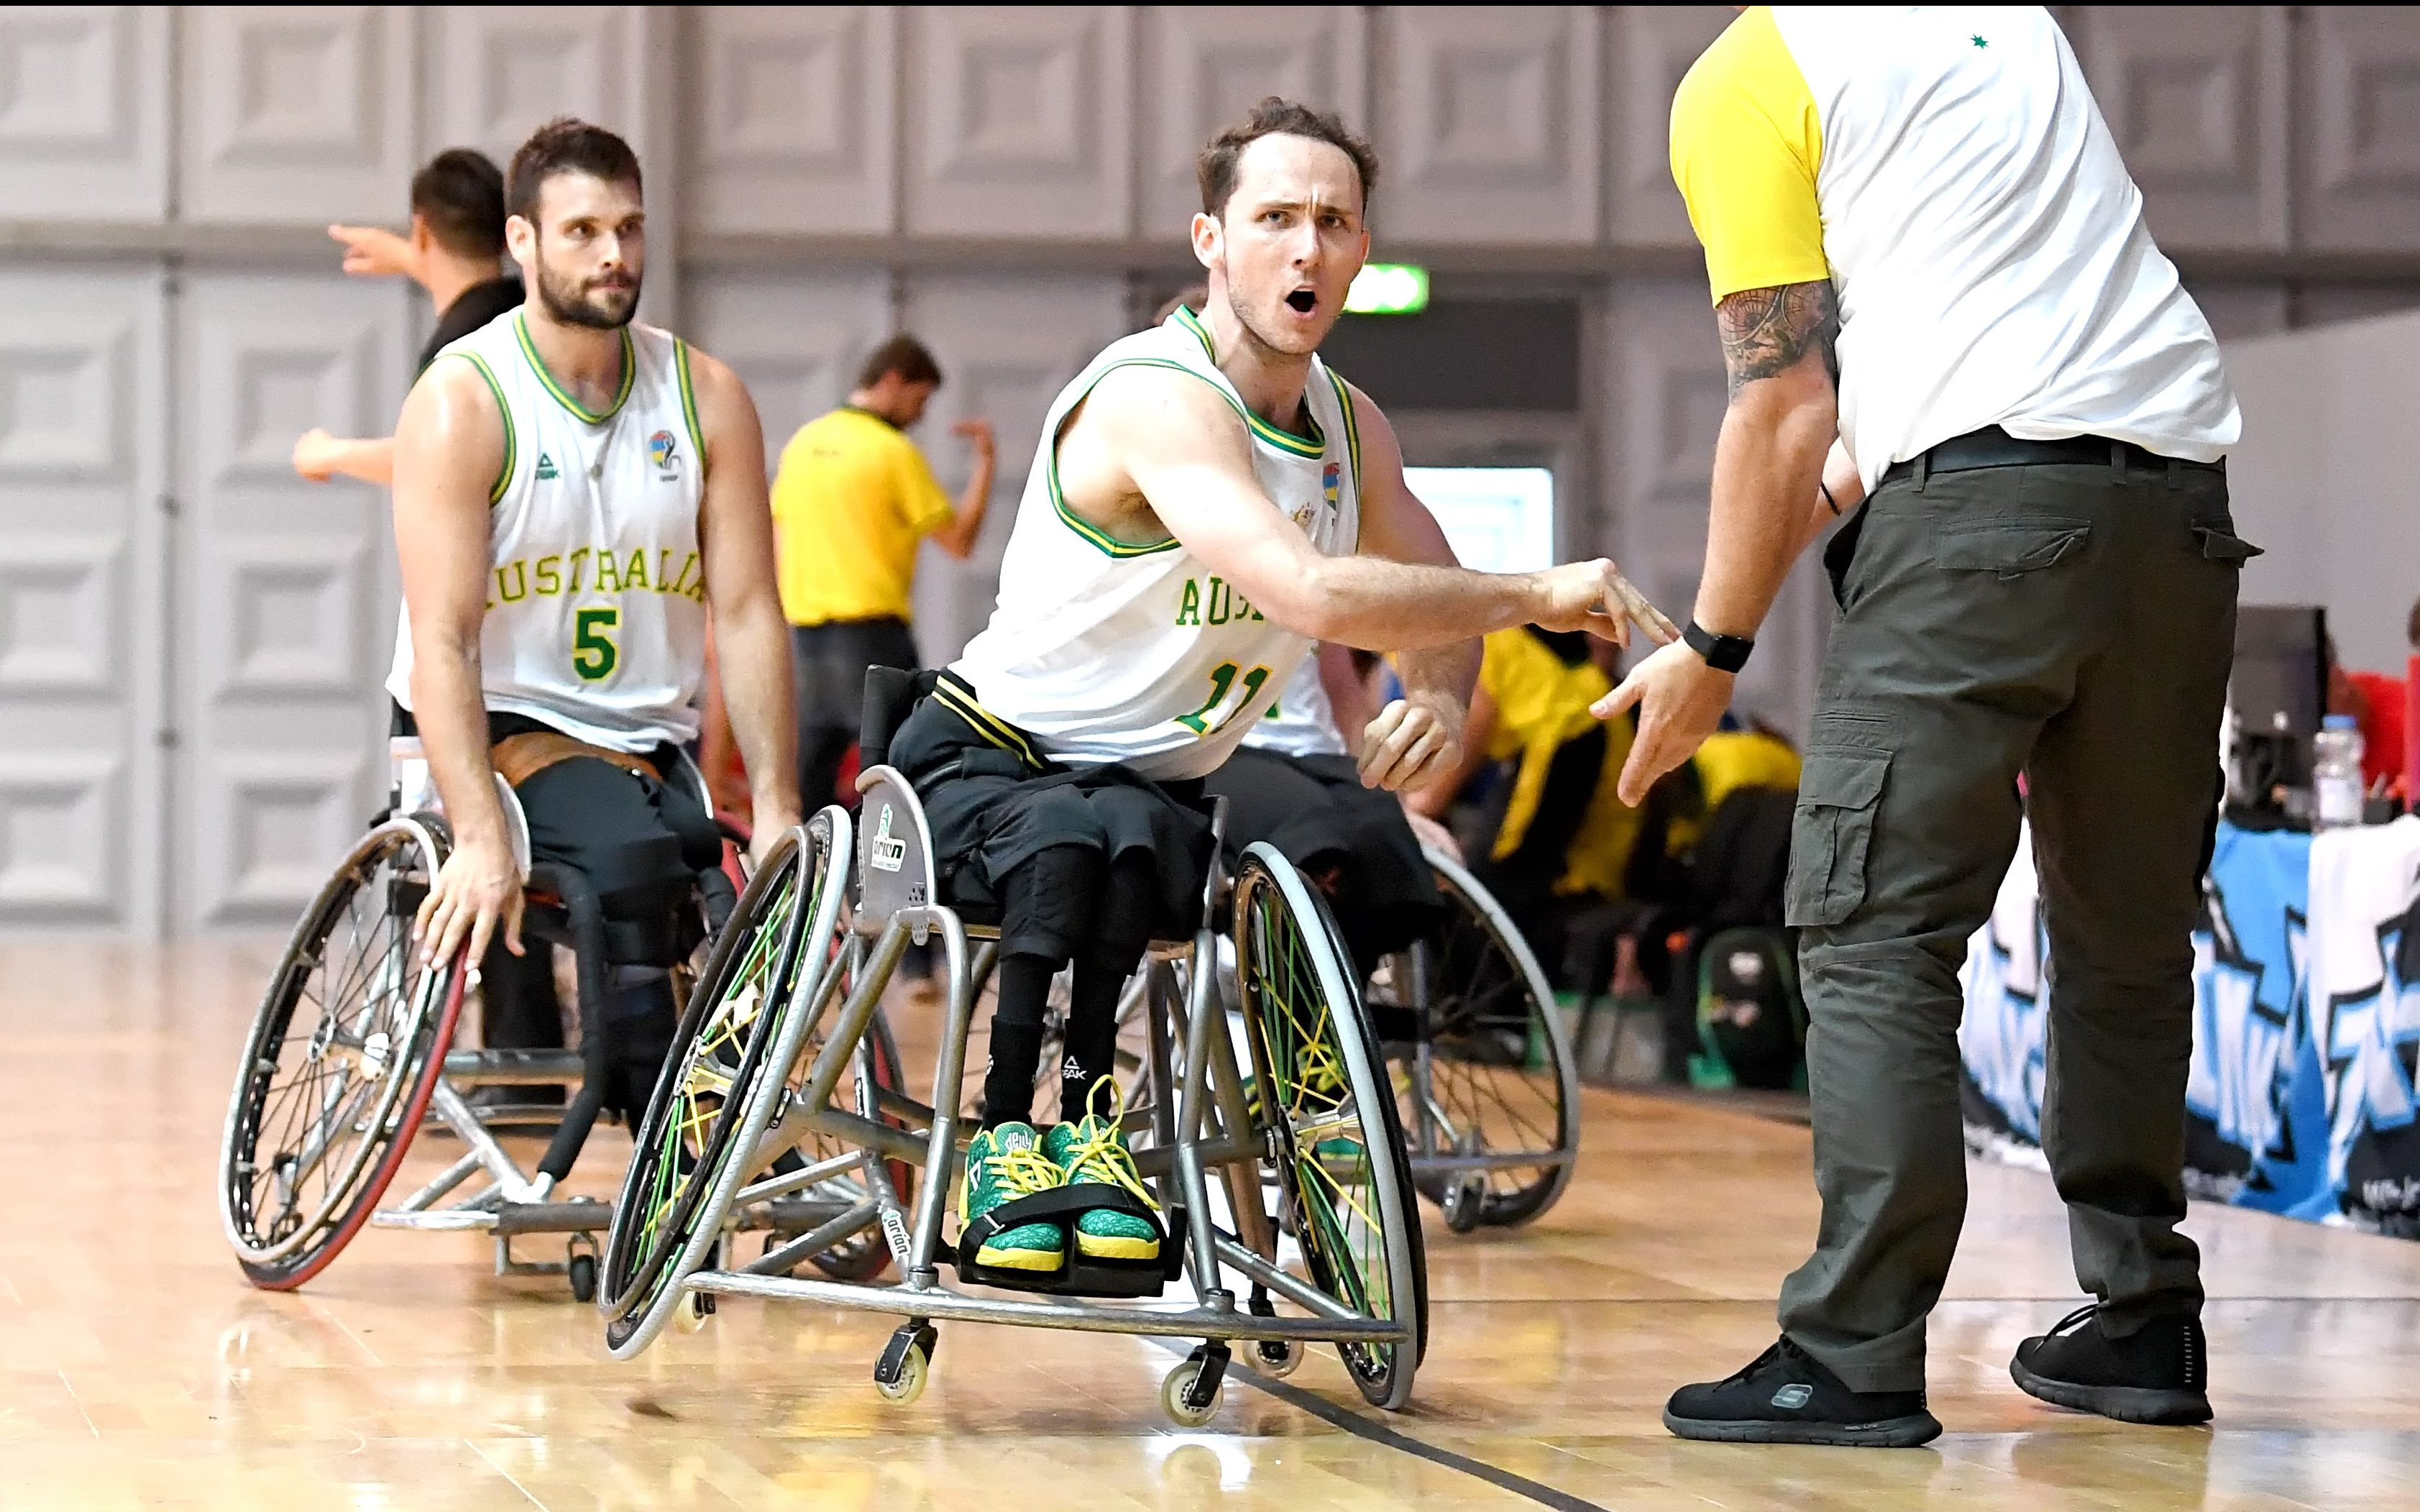 Rollers defeat Brazil to advance to World Champs quarter-finals